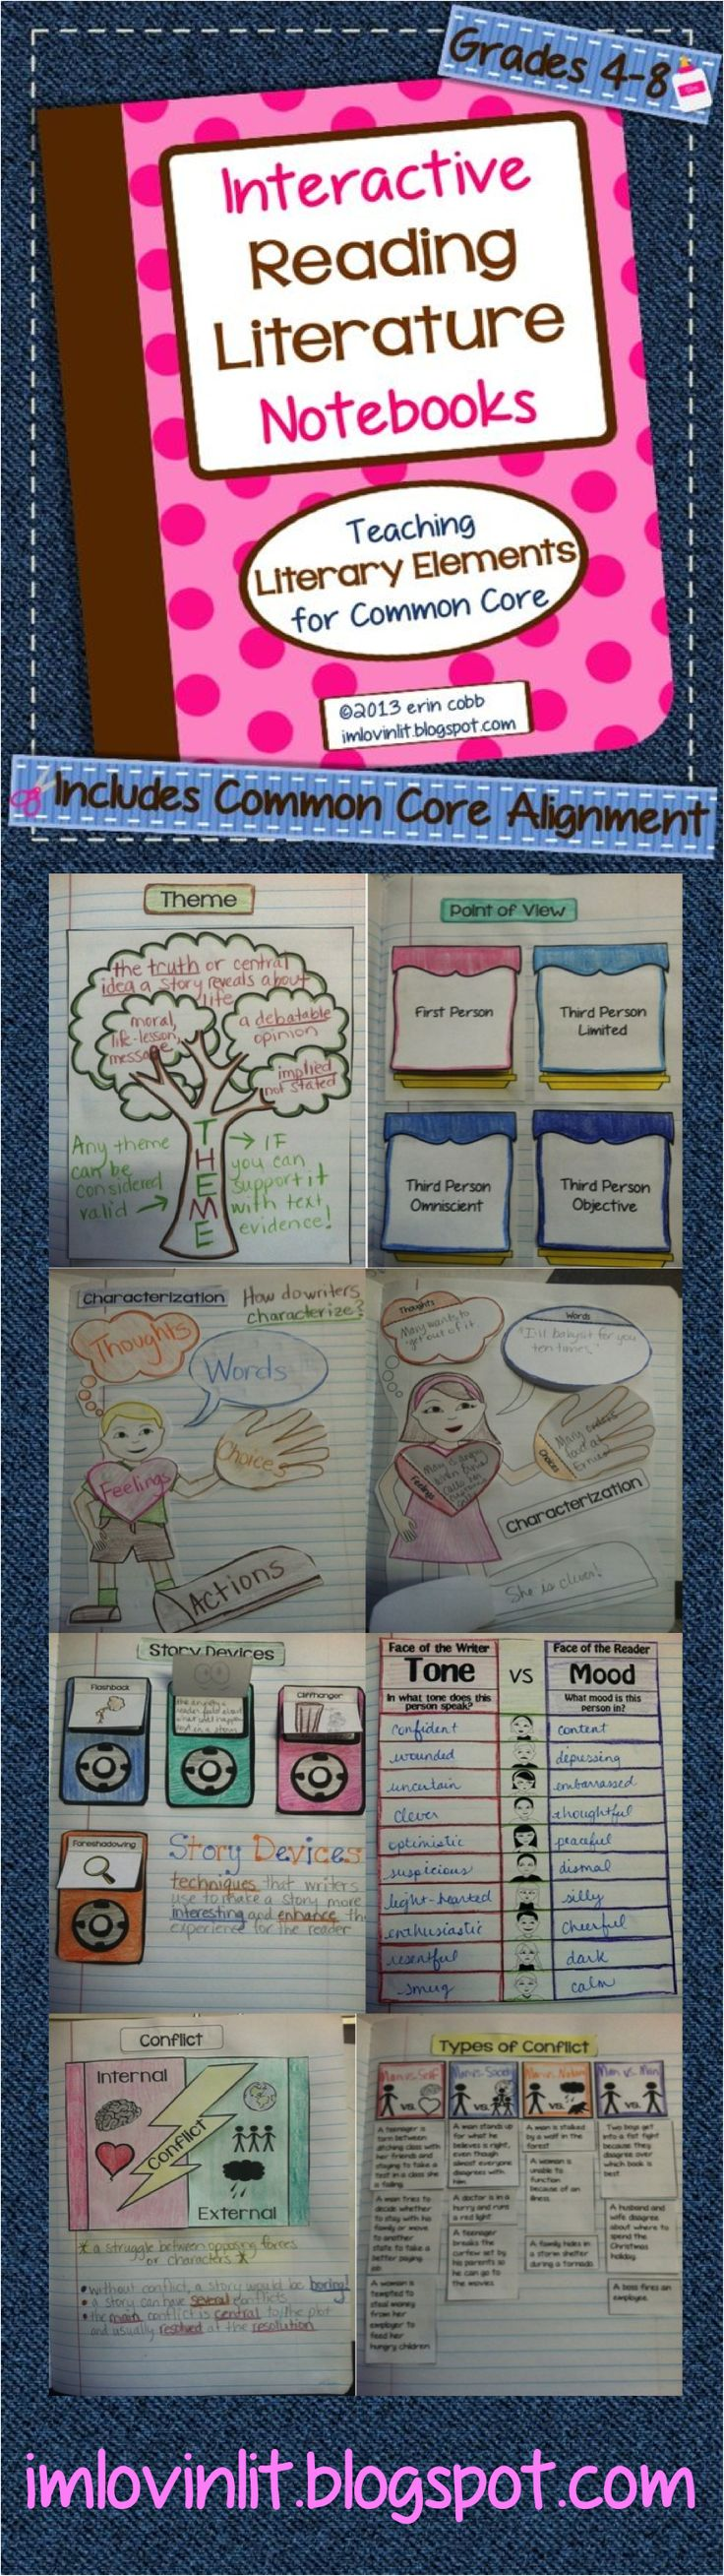 Interactive Reading Literature Notebooks ~ Teaching Literary Elements with Common Core Alignment for Grades 4-8. Some Topics: plot, setting, exposition, rising action, climax, falling action, resolution, internal conflict, external conflict, characterization, point of view, theme, tone and mood, simile, metaphor, personification, hyperbole, alliteration, allusion, onomatopoeia, and MORE! See TpT listing for table of contents, CCSS alignment, and samples!